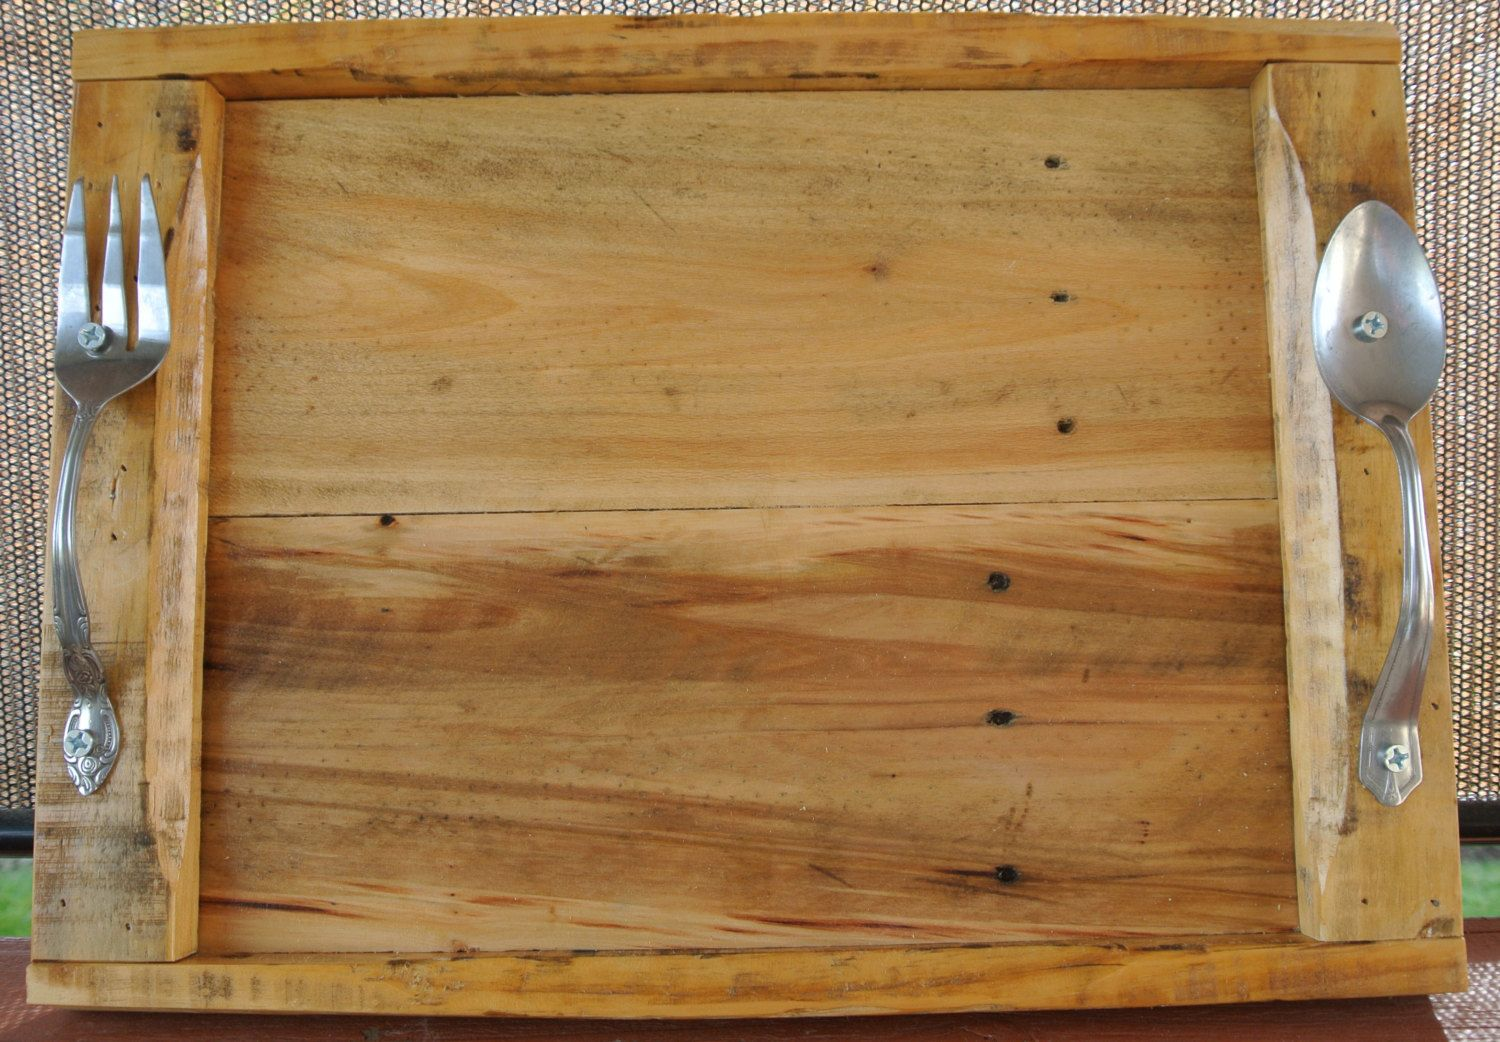 Reclaimed Pallet Wood Serving Tray With Fork And Spoon